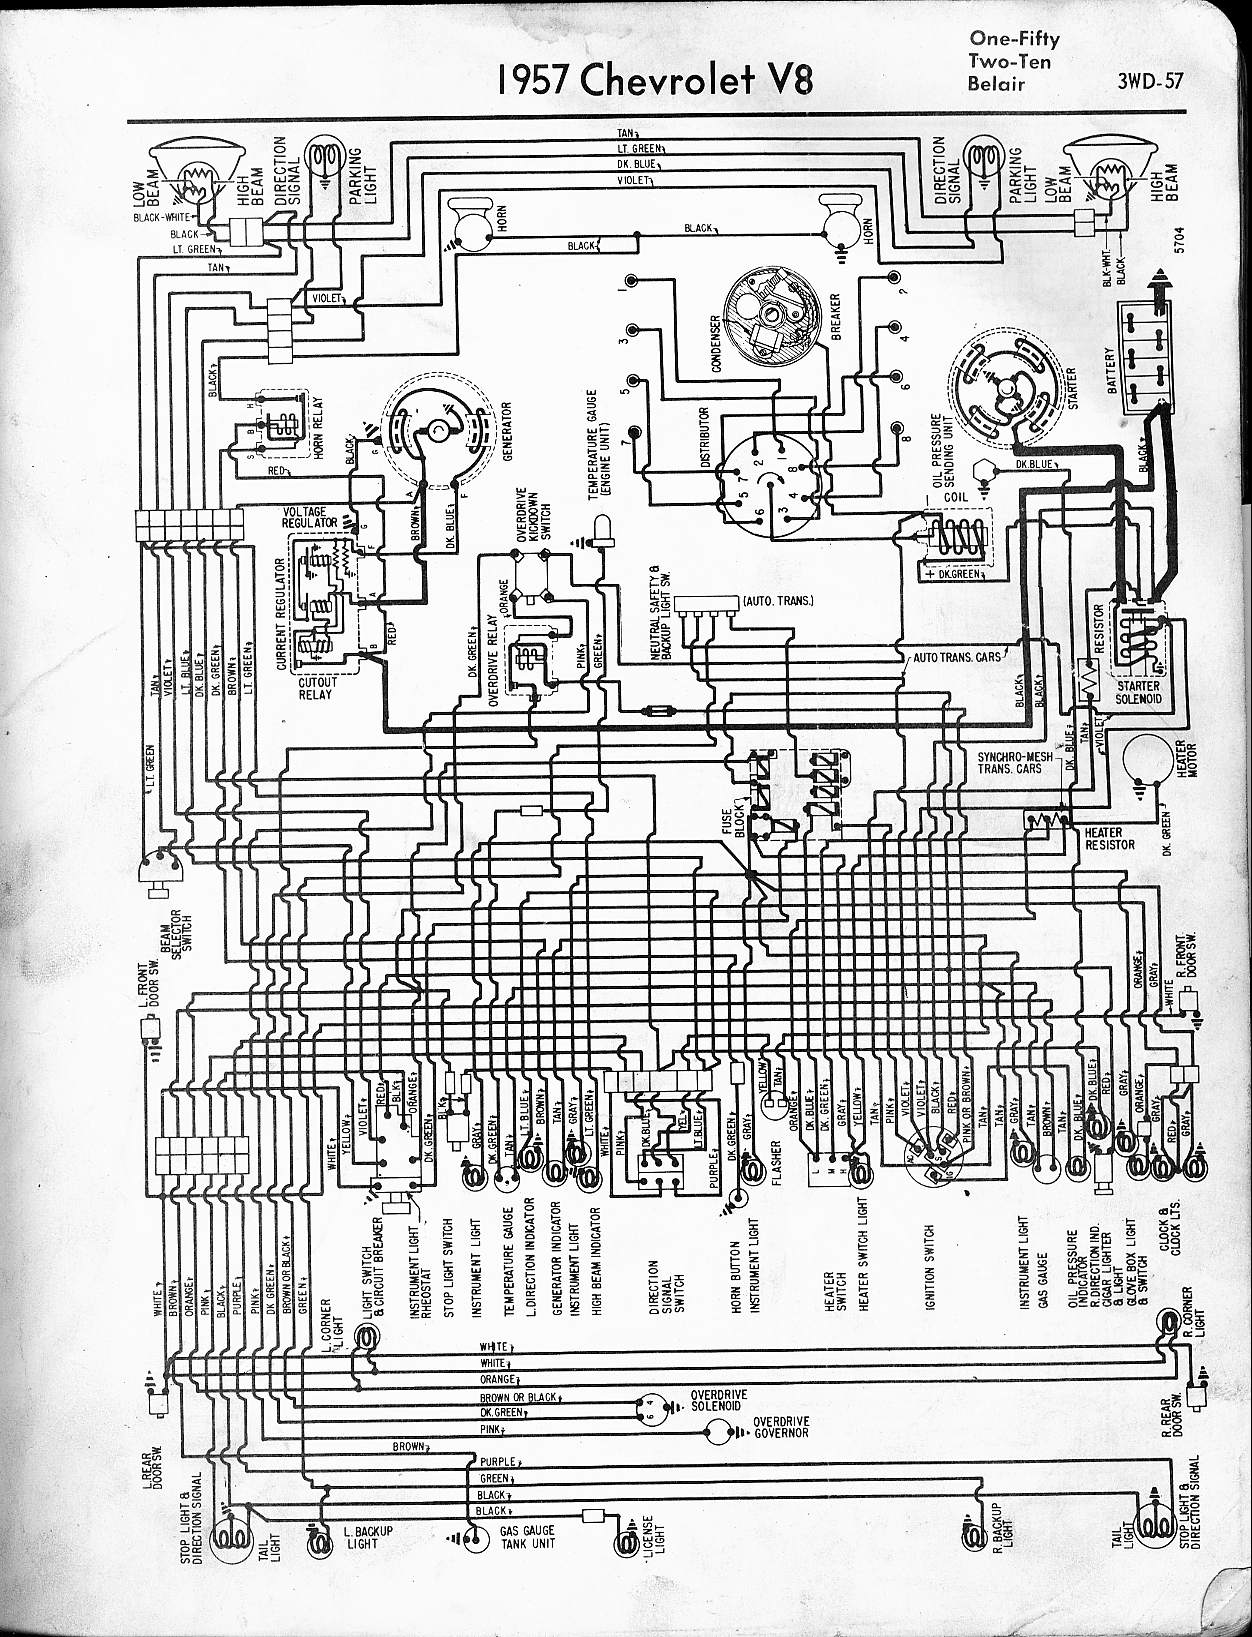 MWireChev57_3WD 057 neutral safety switch, 57 powerglide trifive com, 1955 chevy 1957 chevrolet wiring diagram at readyjetset.co